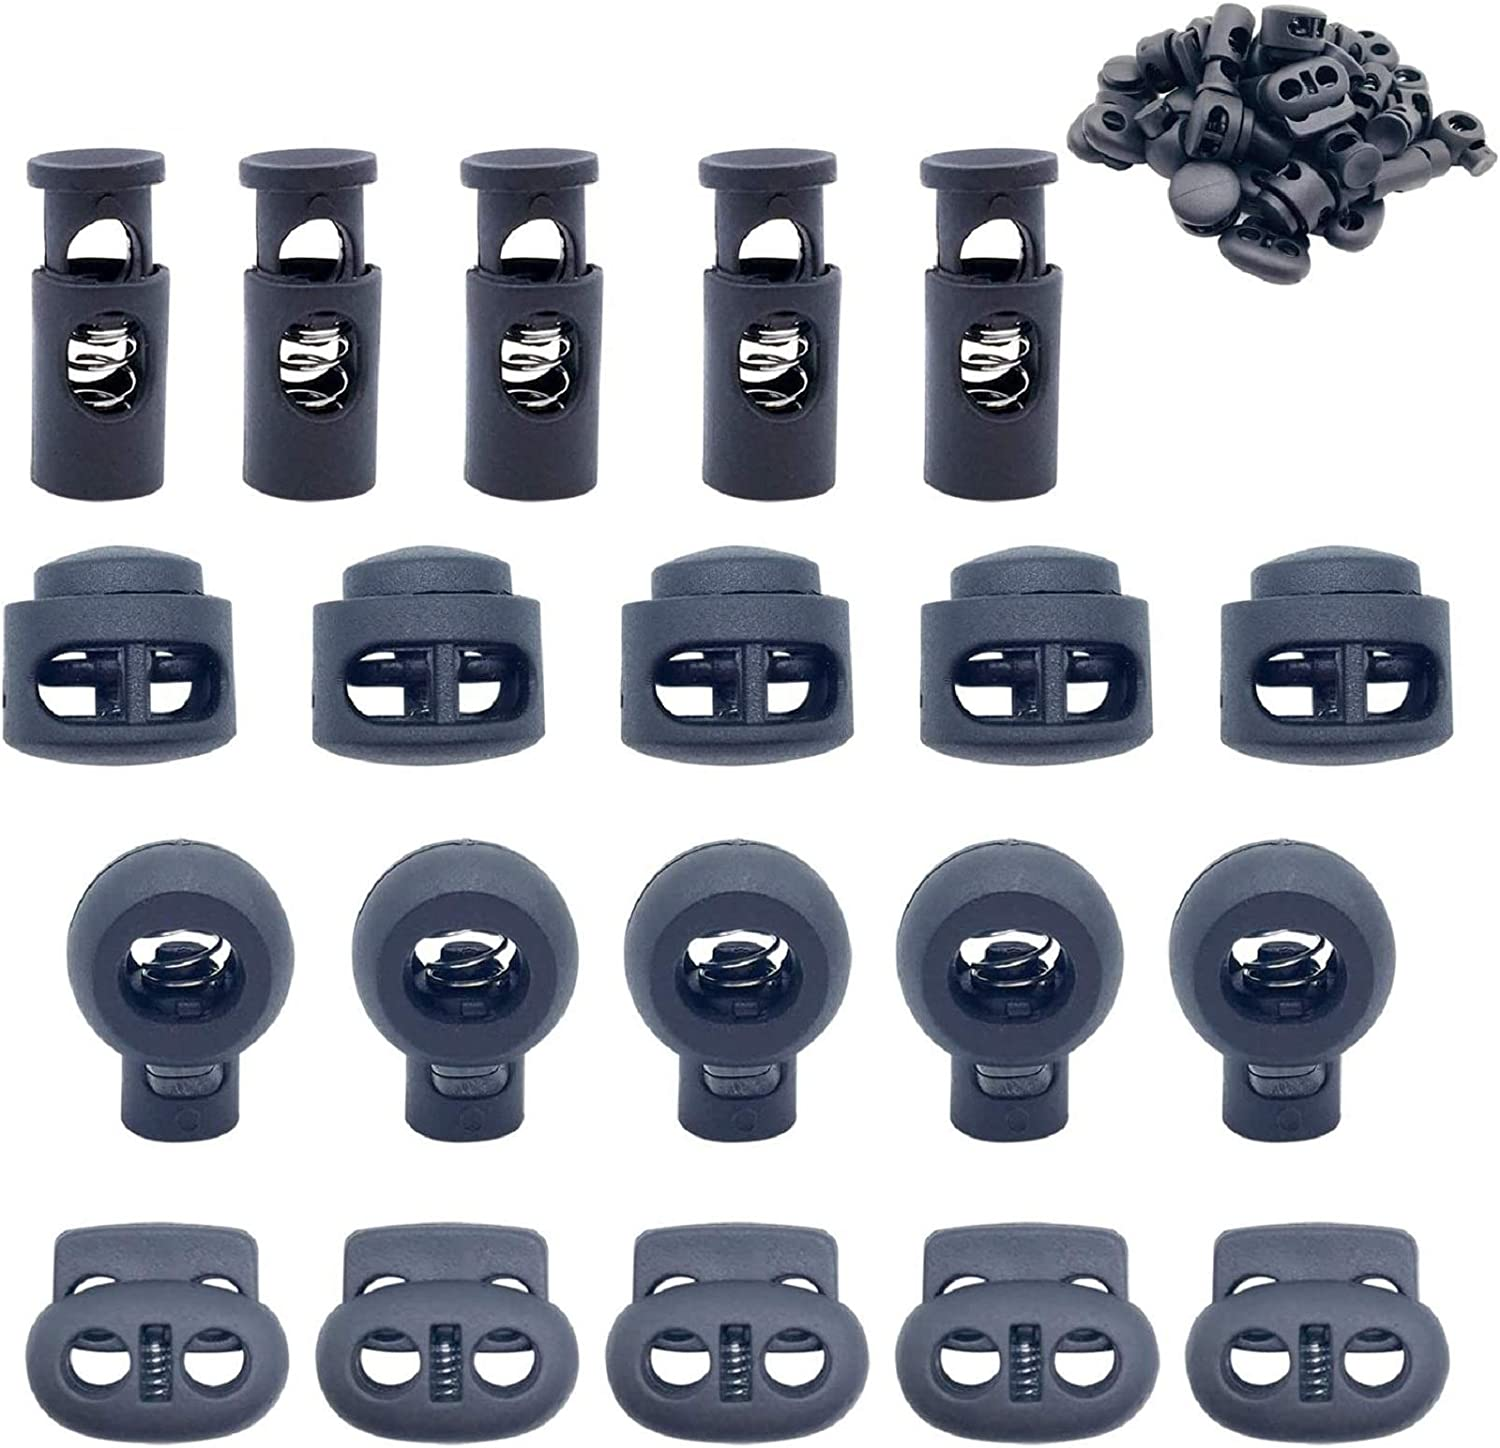 4 Types End Spring Toggle Stopper Slider for Drawstring Backpack Rucksack Craft Supplies Sing-Hole and Double-Hole,Black ACKLLR 20 Pcs Plastic Cord Locks